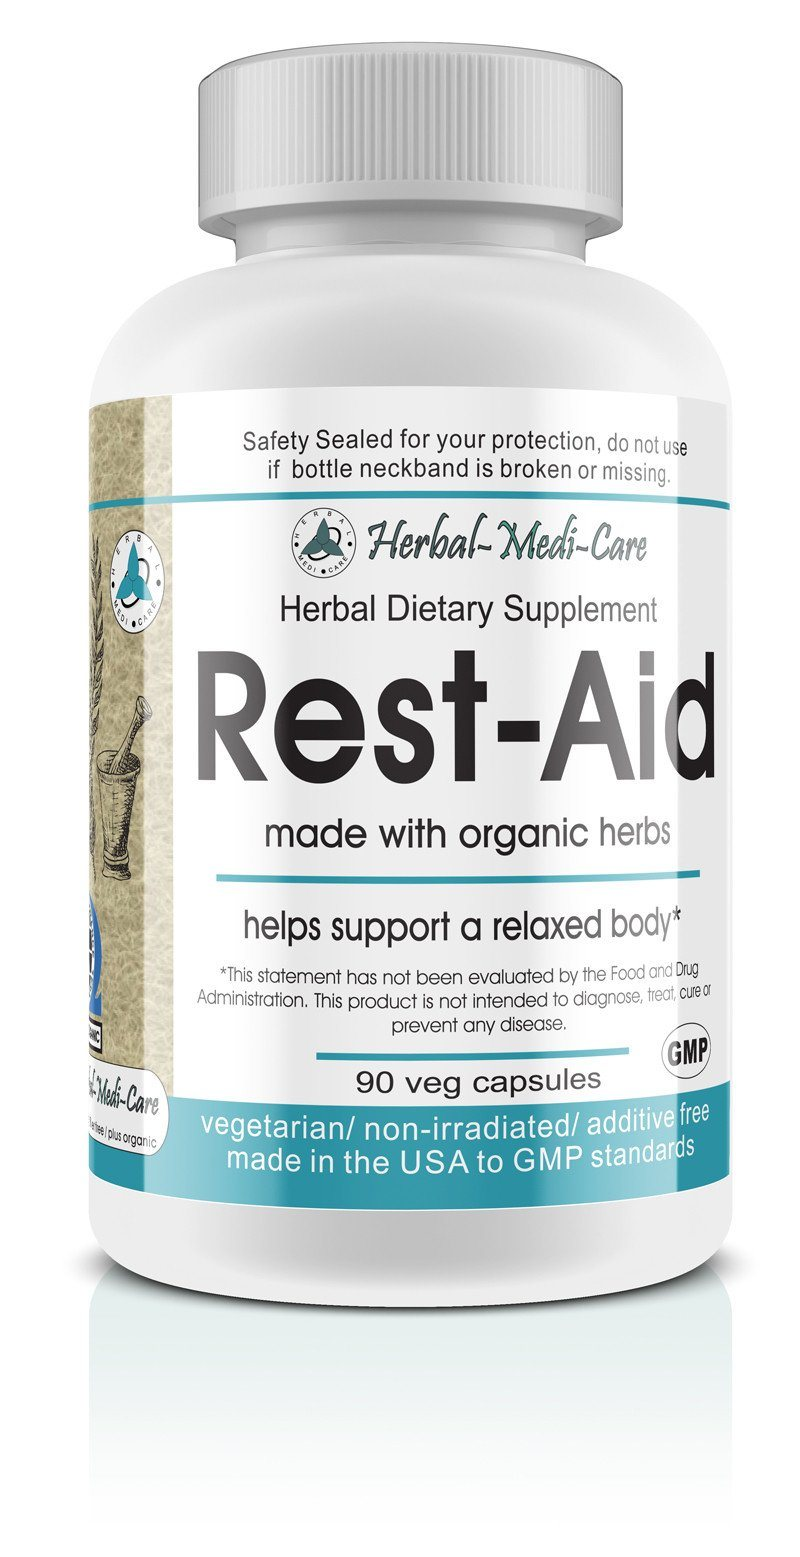 Herbal-Medi-Care Whole Food Rest-Aid (Stress And Sleep) Vegetarian Capsules; 90-Count, Made with Organic - Herbal-Medi-Care Whole Food Rest-Aid (Stress And Sleep) Vegetarian Capsules; 90-Count, Made with Organic - Herbal-Medi-Care Whole Food Rest-Aid (Stress And Sleep) Vegetarian Capsules; 90-Count, Made with Organic